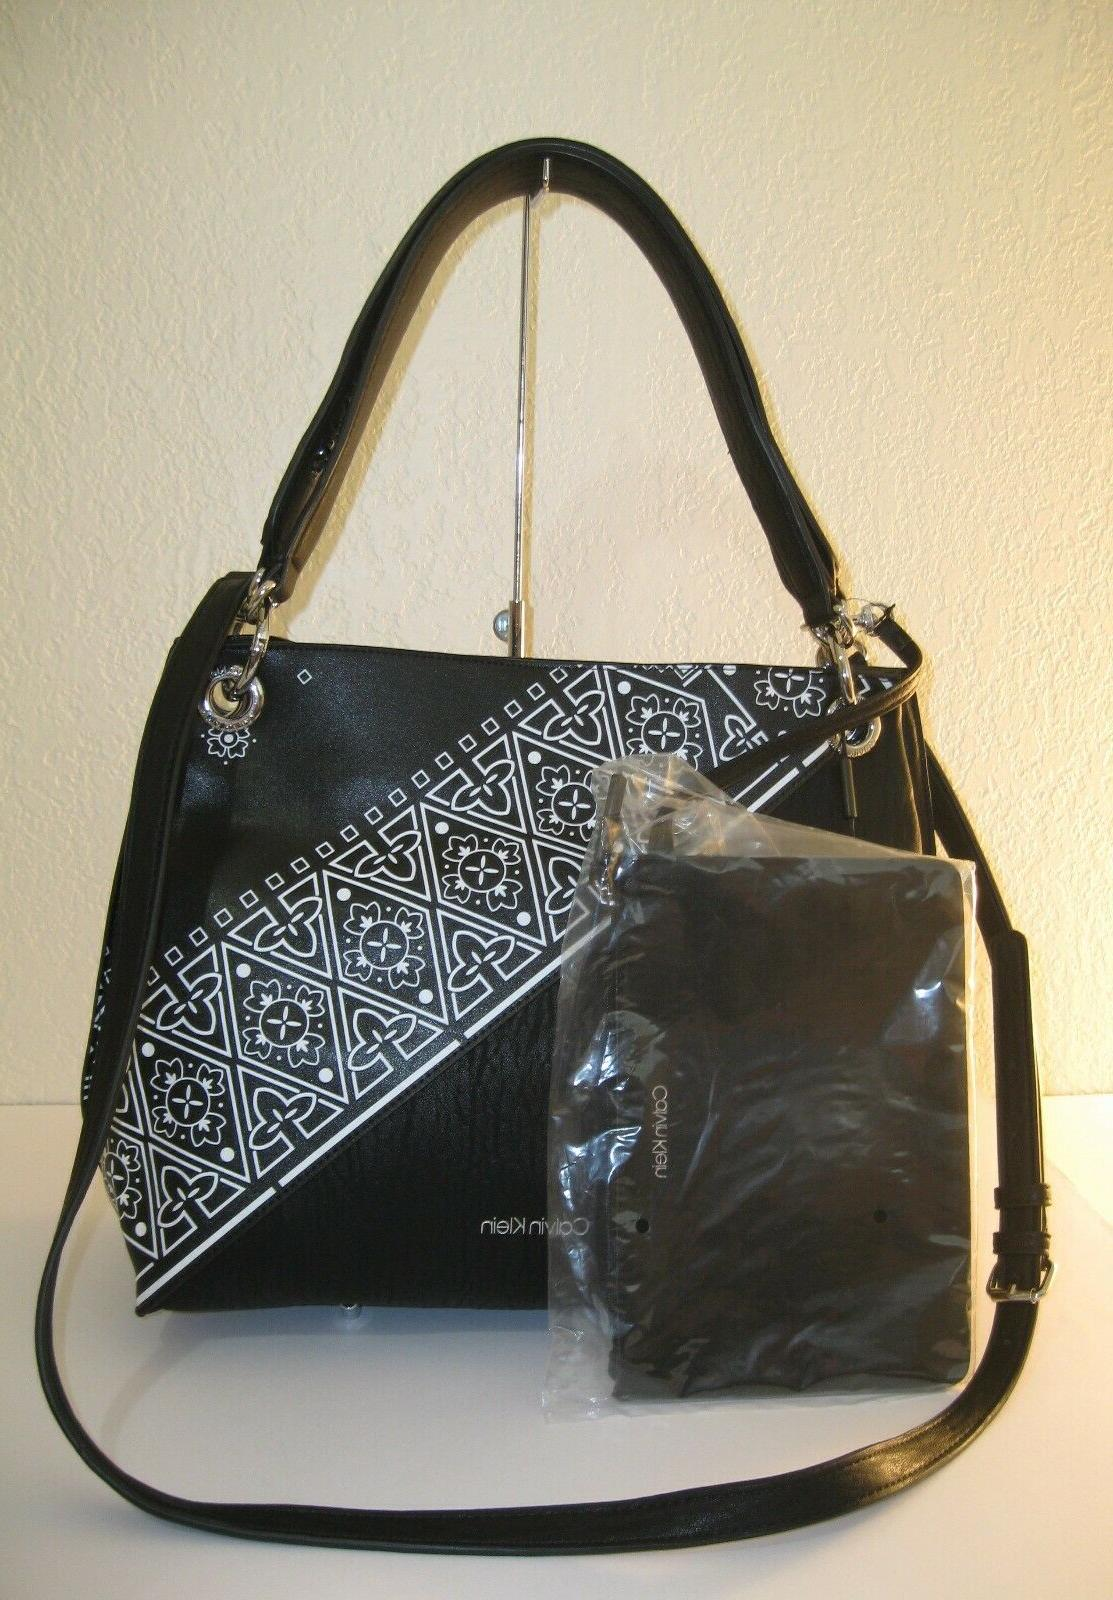 nwt double strap hobo black white shoulder